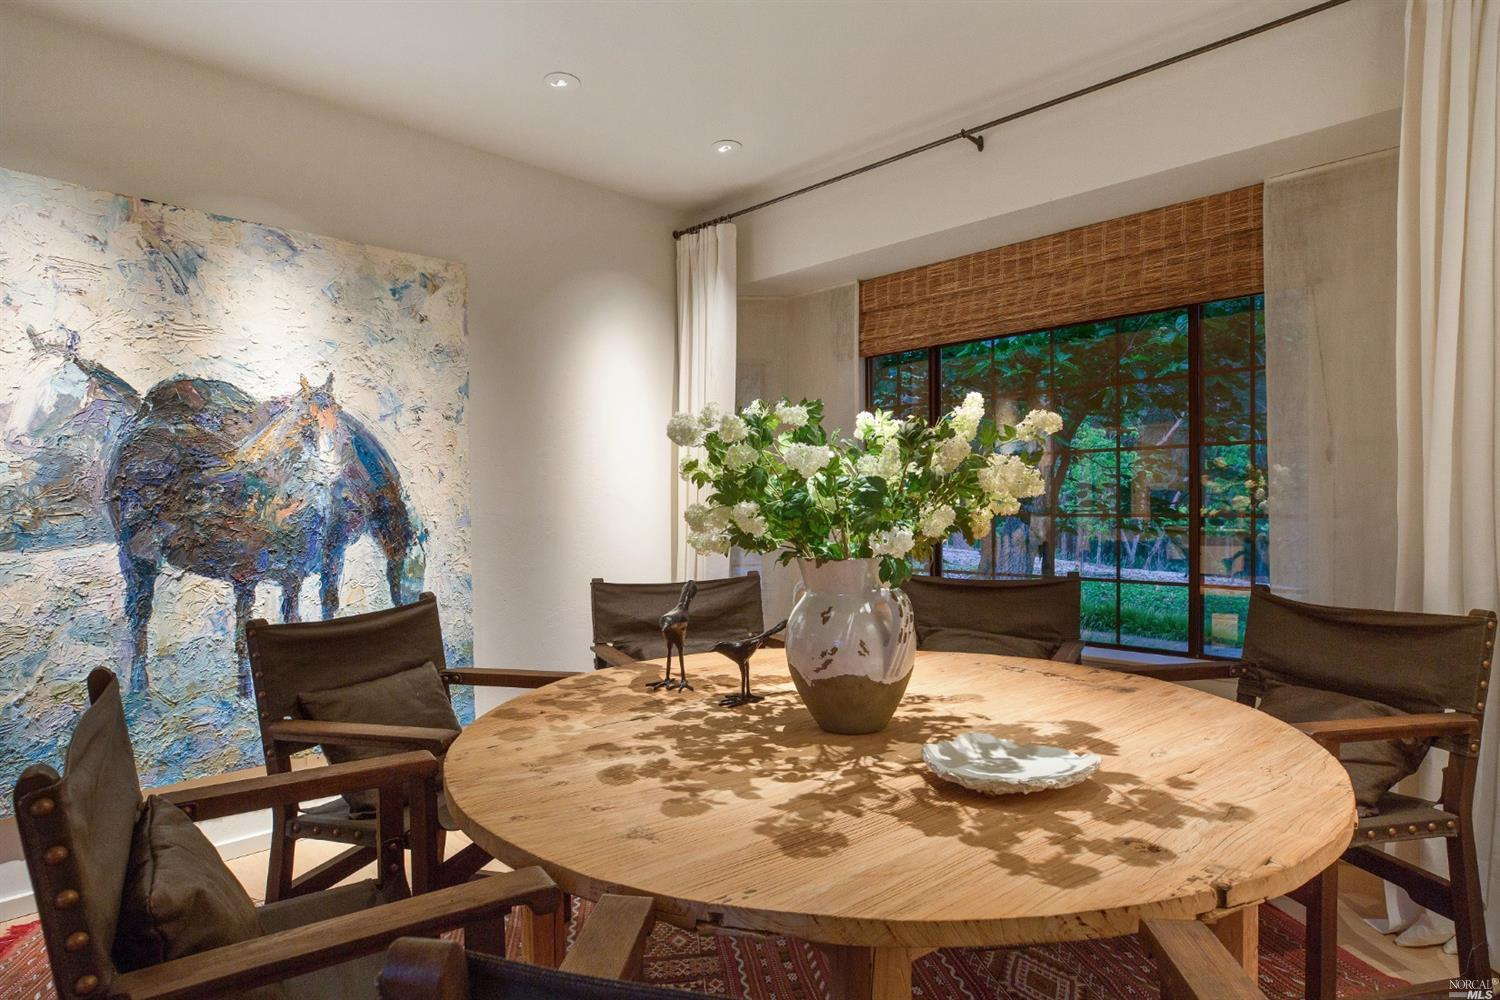 Inside Robert Redford's house for sale in St. Helene - Dining Room with beautiful round dining table